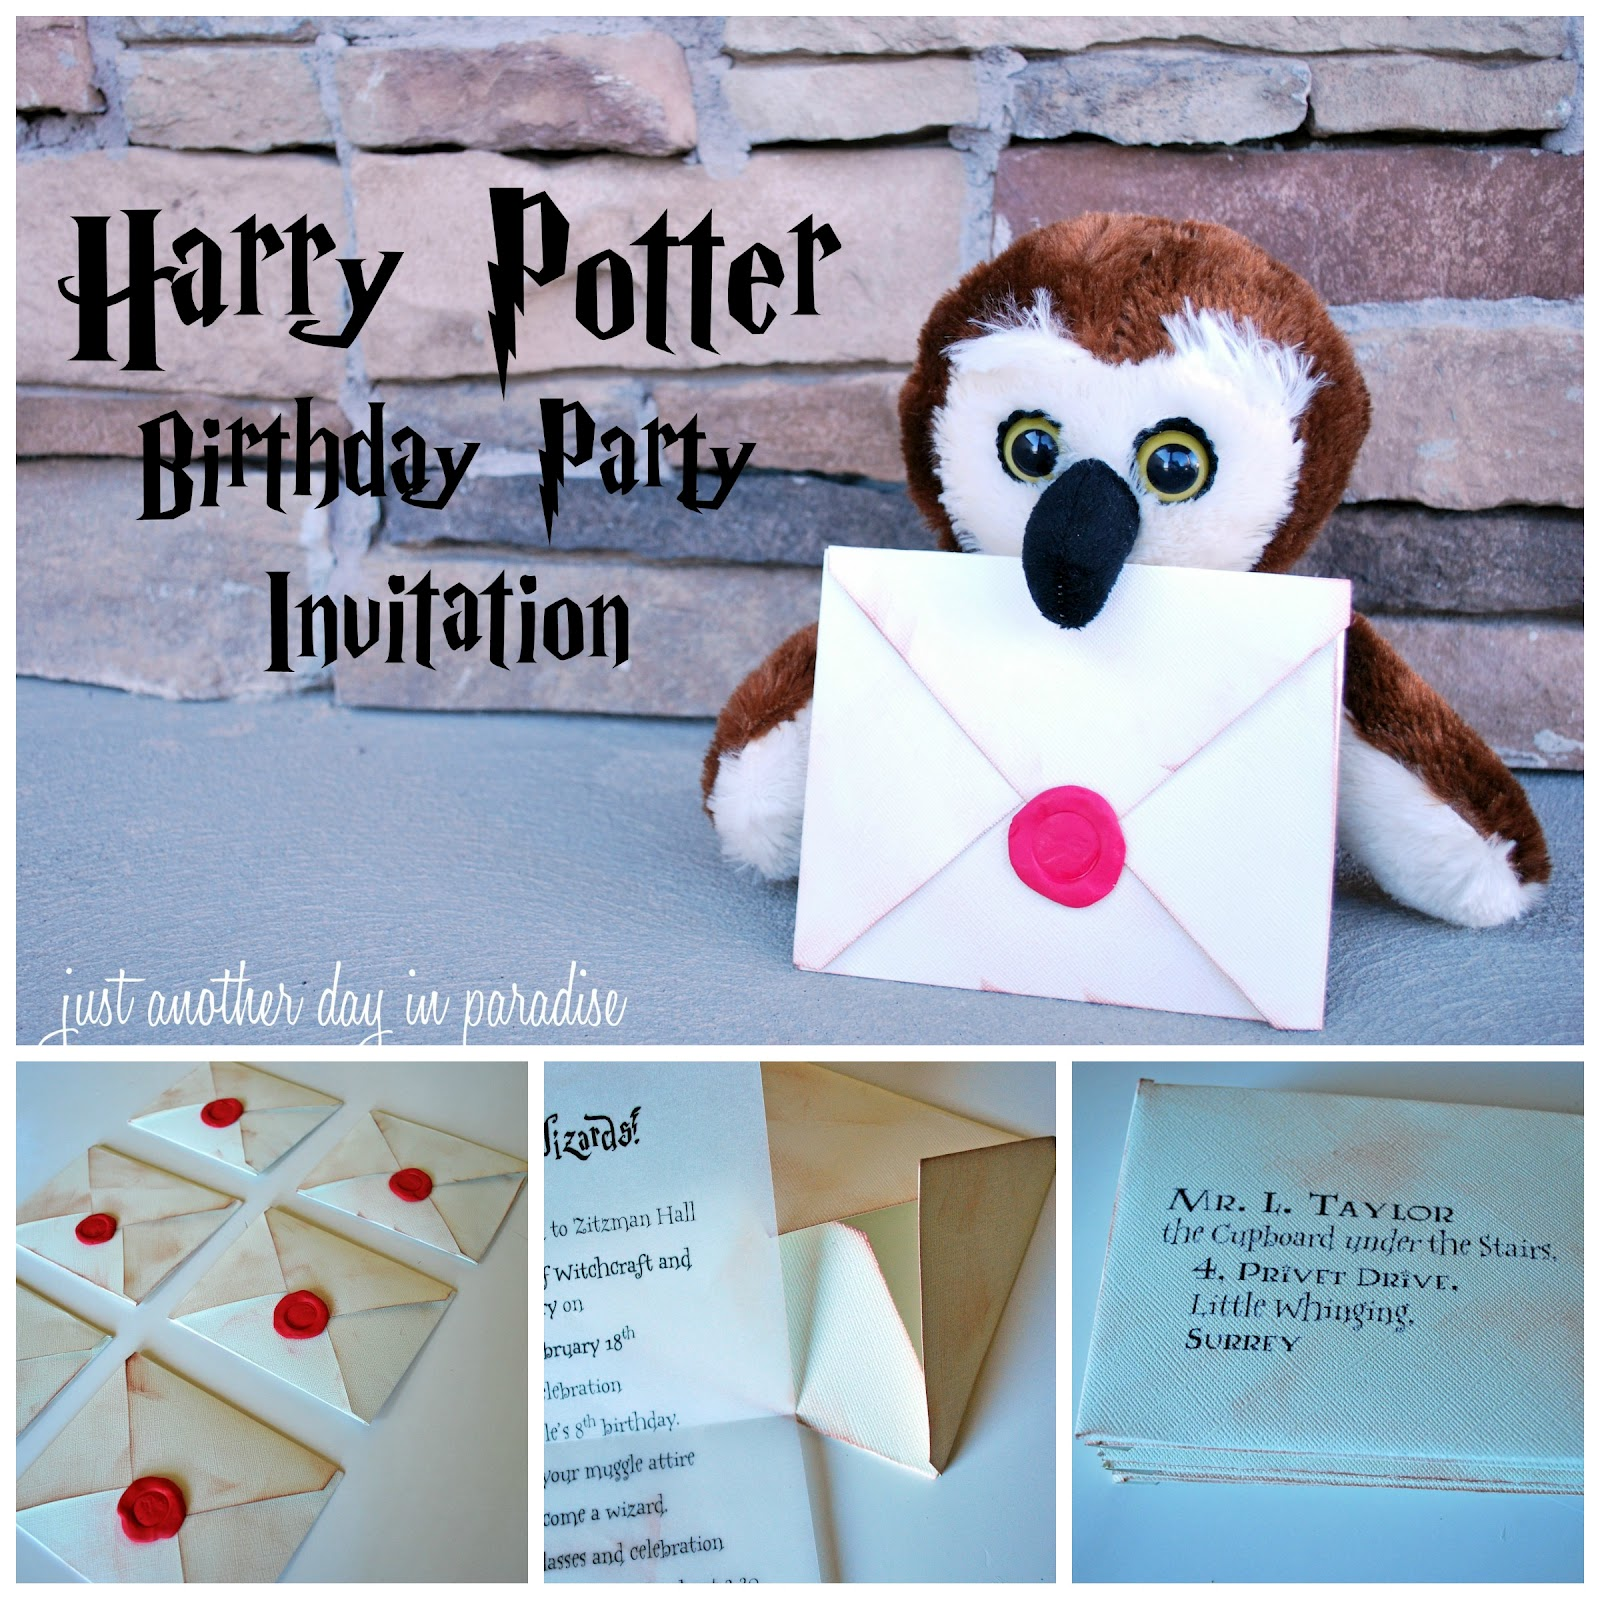 Harry Potter Party Invitations is an amazing ideas you had to choose for invitation design